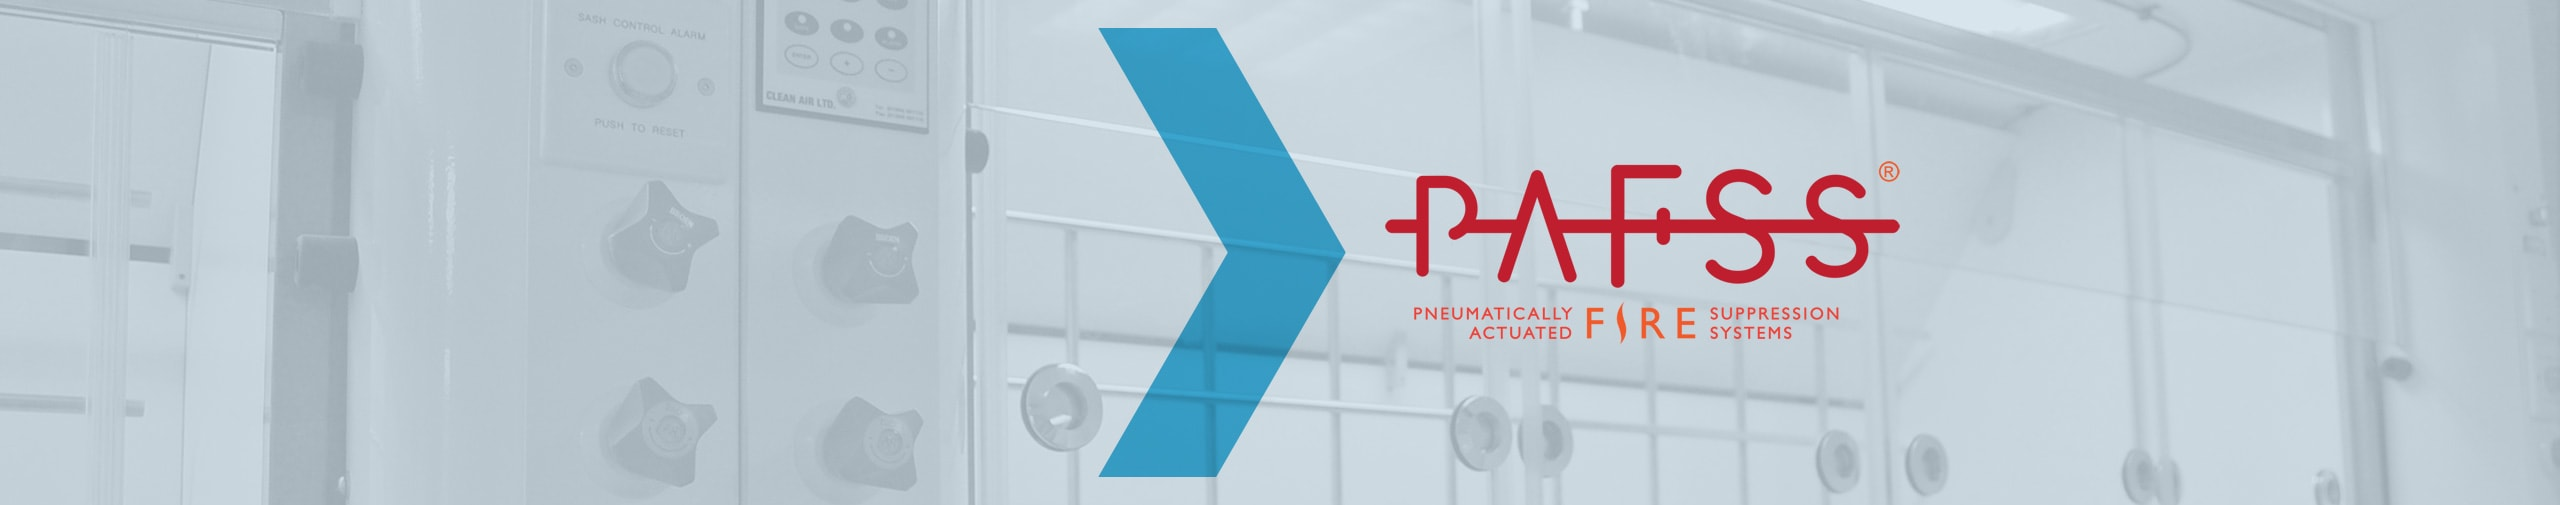 PAFSS Fume Hood Fire Suppression Systems